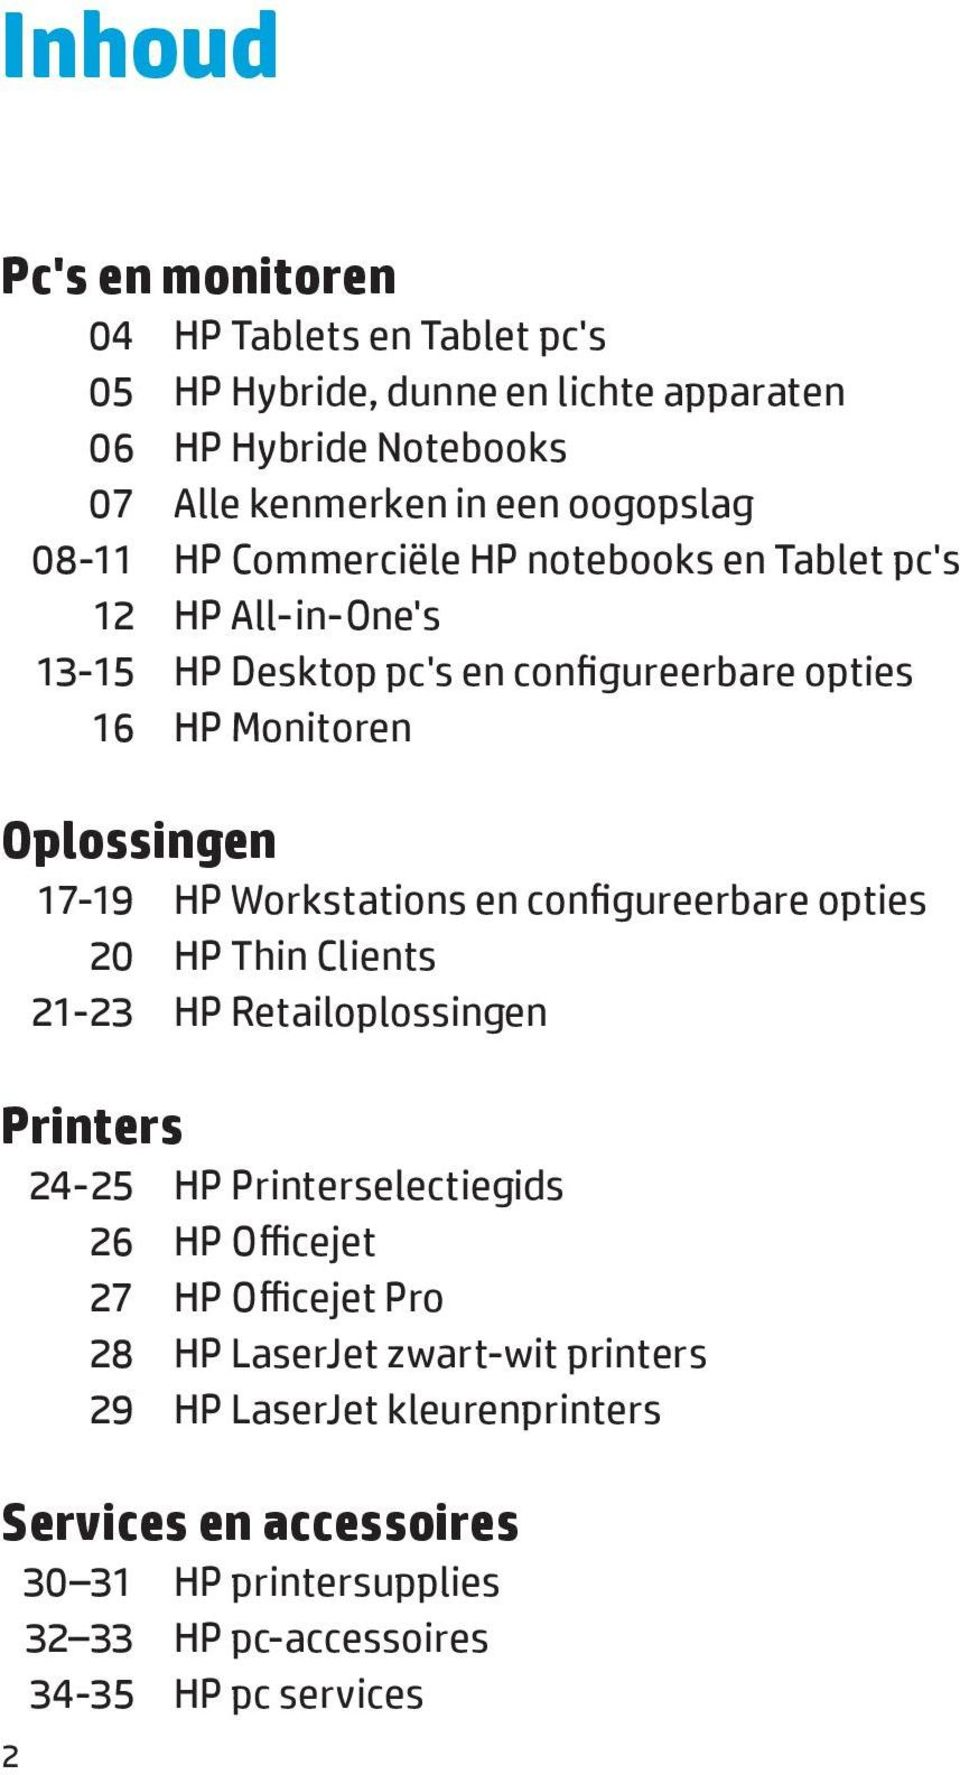 Workstations en configureerbare opties 20 HP Thin Clients 21-23 HP Retailoplossingen Printers 24-25 HP Printerselectiegids 26 HP Officejet 27 HP Officejet